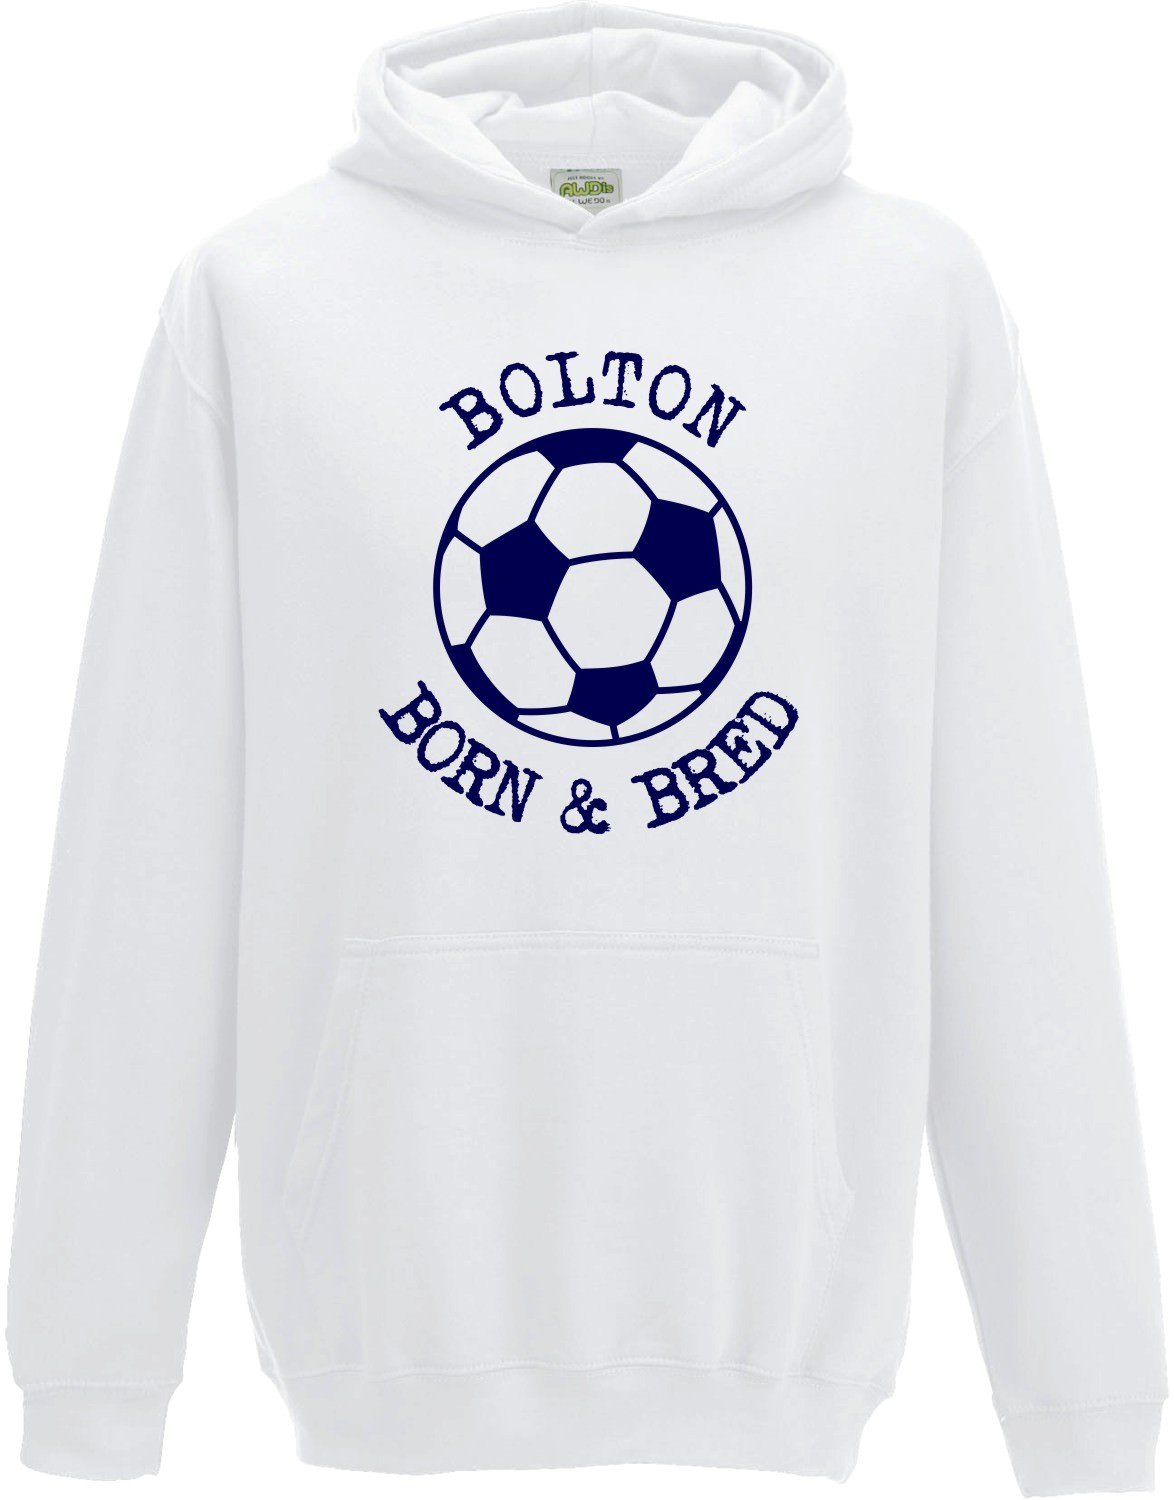 Hat-Trick Designs Bolton Wanderers Football Baby/Kids/Childrens Hoodie Sweatshirt-White-Born & Bred-Unisex Gift